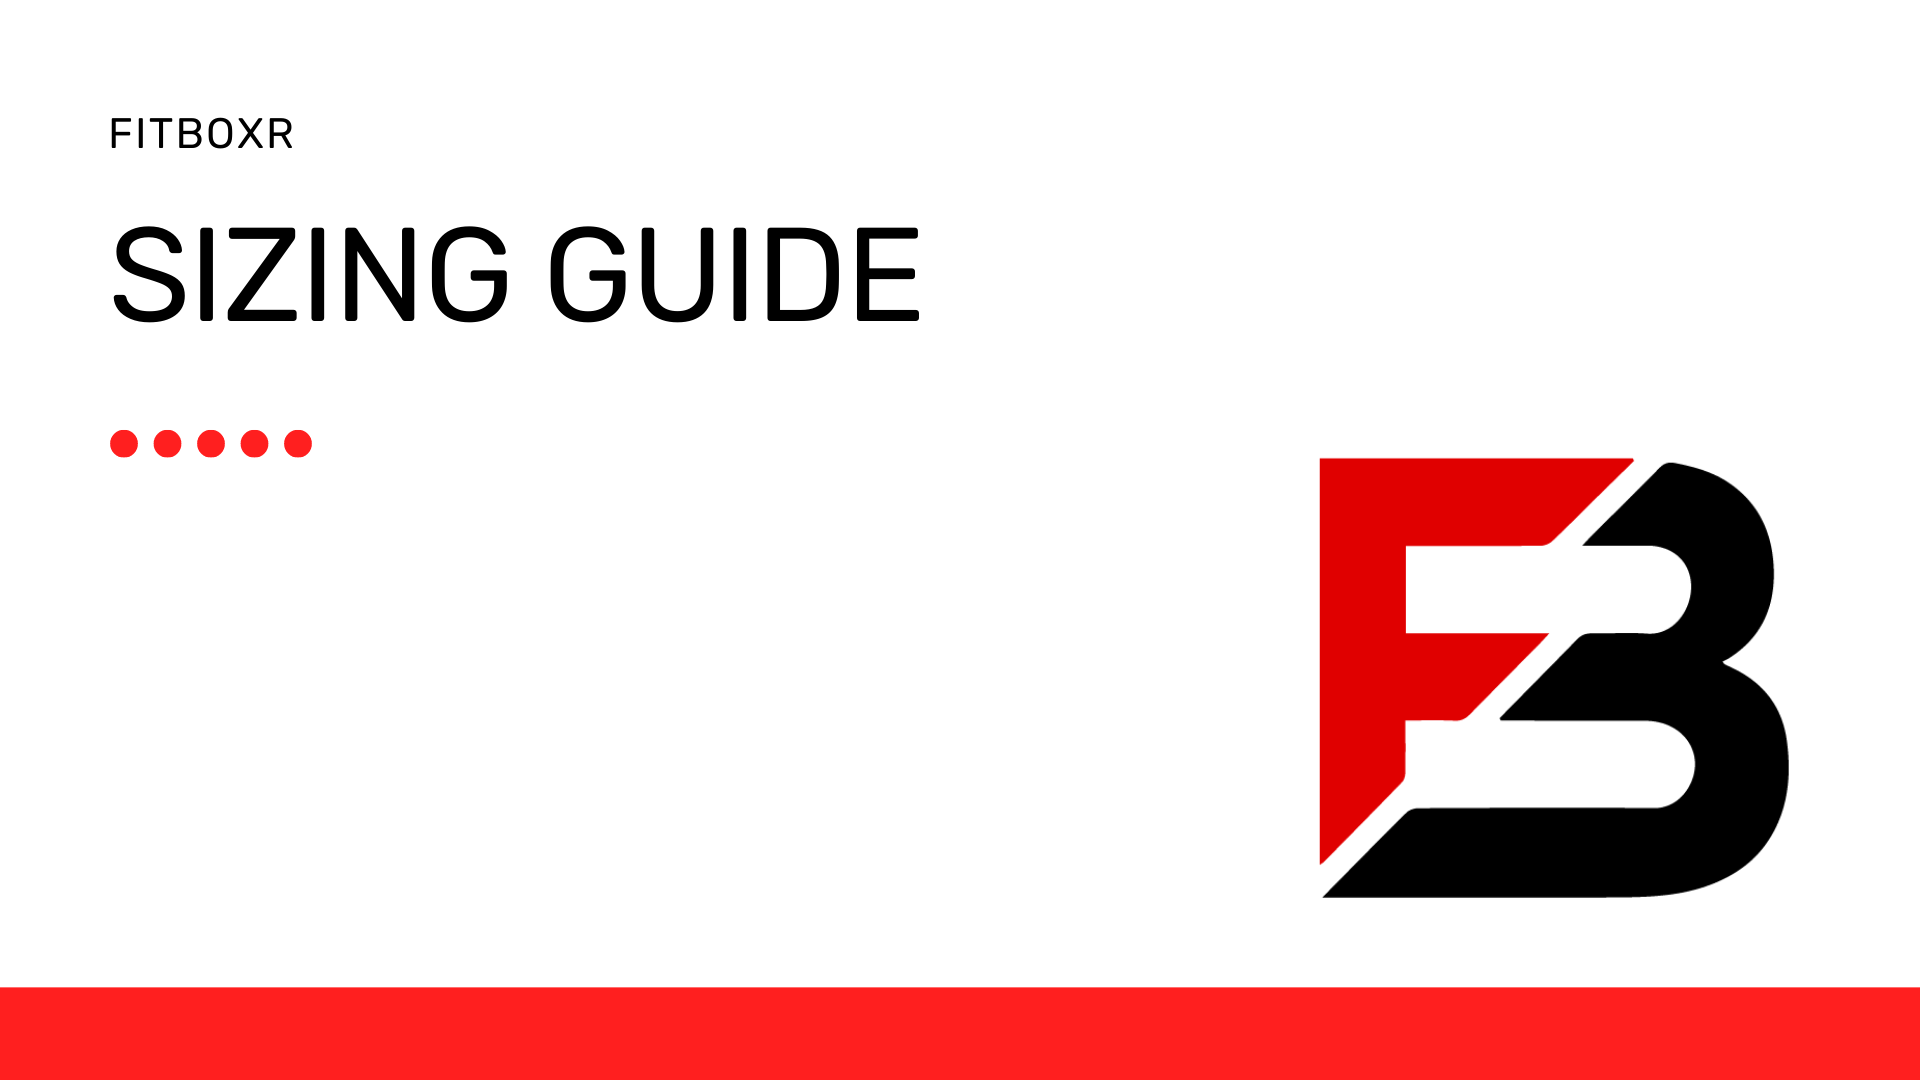 Fitboxr - Sizing Guide